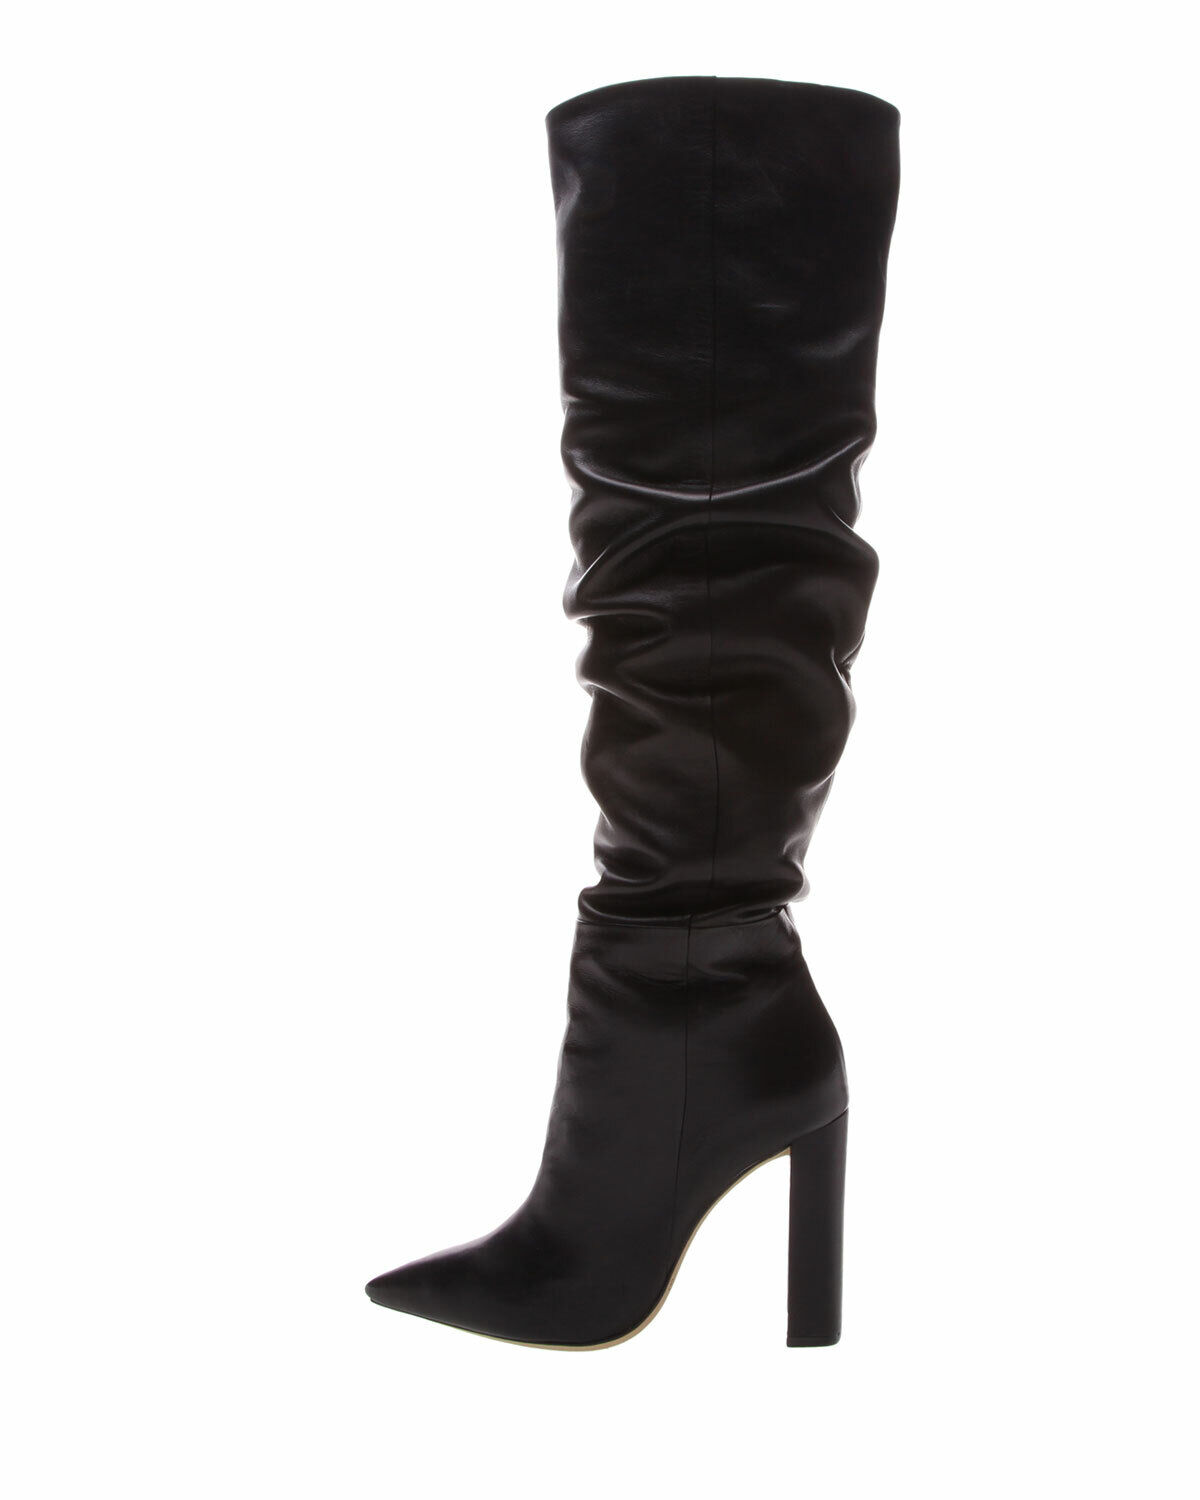 BNIB ALEXANDRE BIRMAN - Anna Slouch Over the knee Leather Boots - 38.5